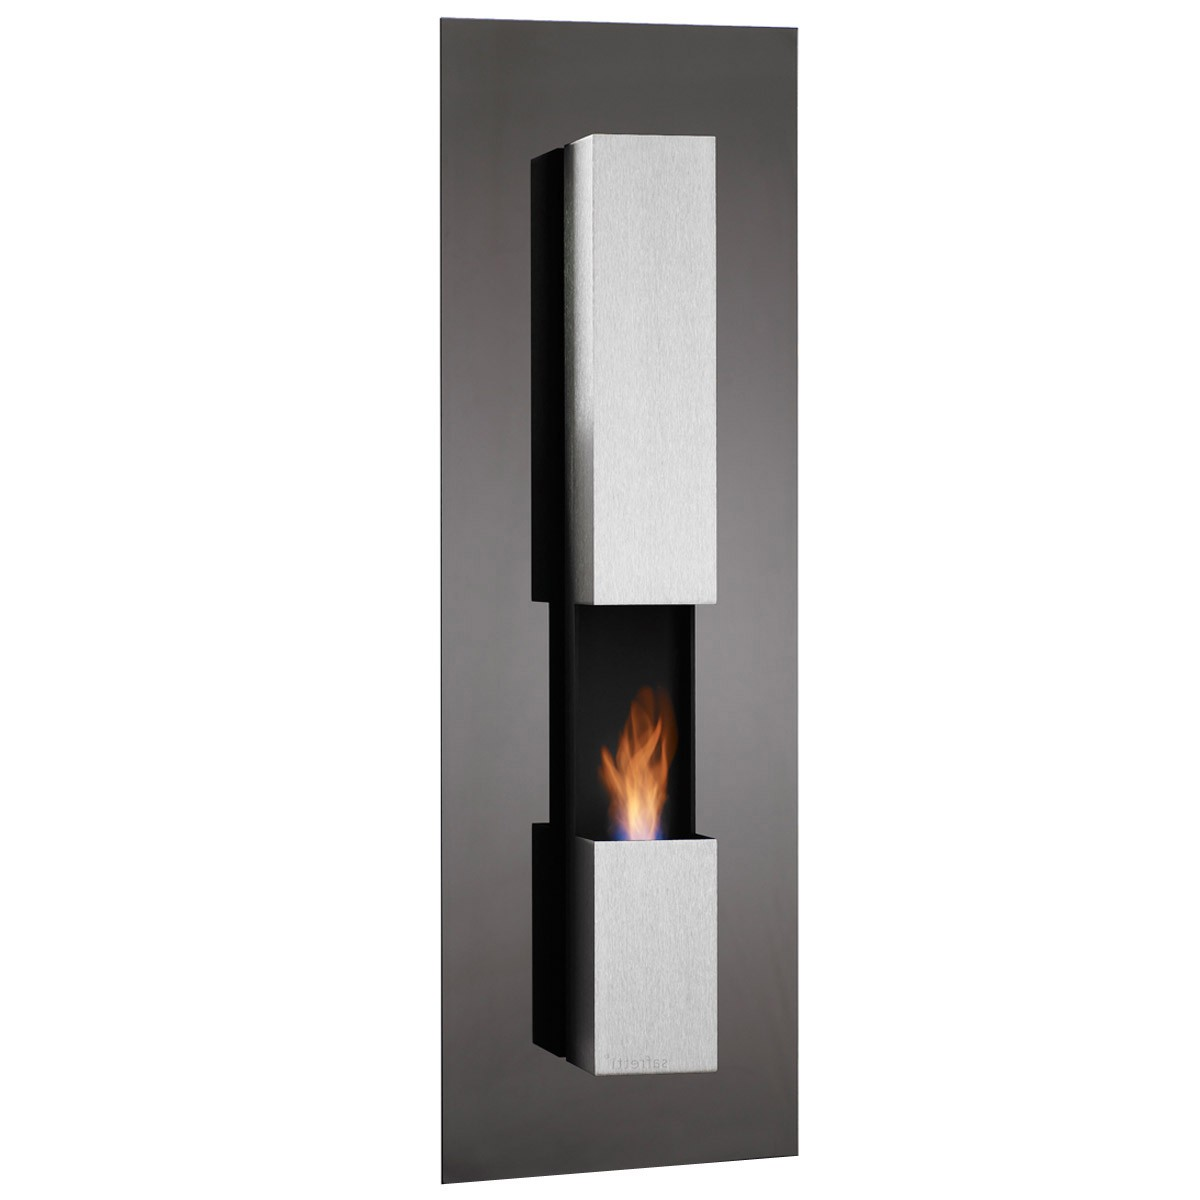 safretti ethanolkamin riviera le gl feuer grill ethanolkamine ethanol wandkamine. Black Bedroom Furniture Sets. Home Design Ideas